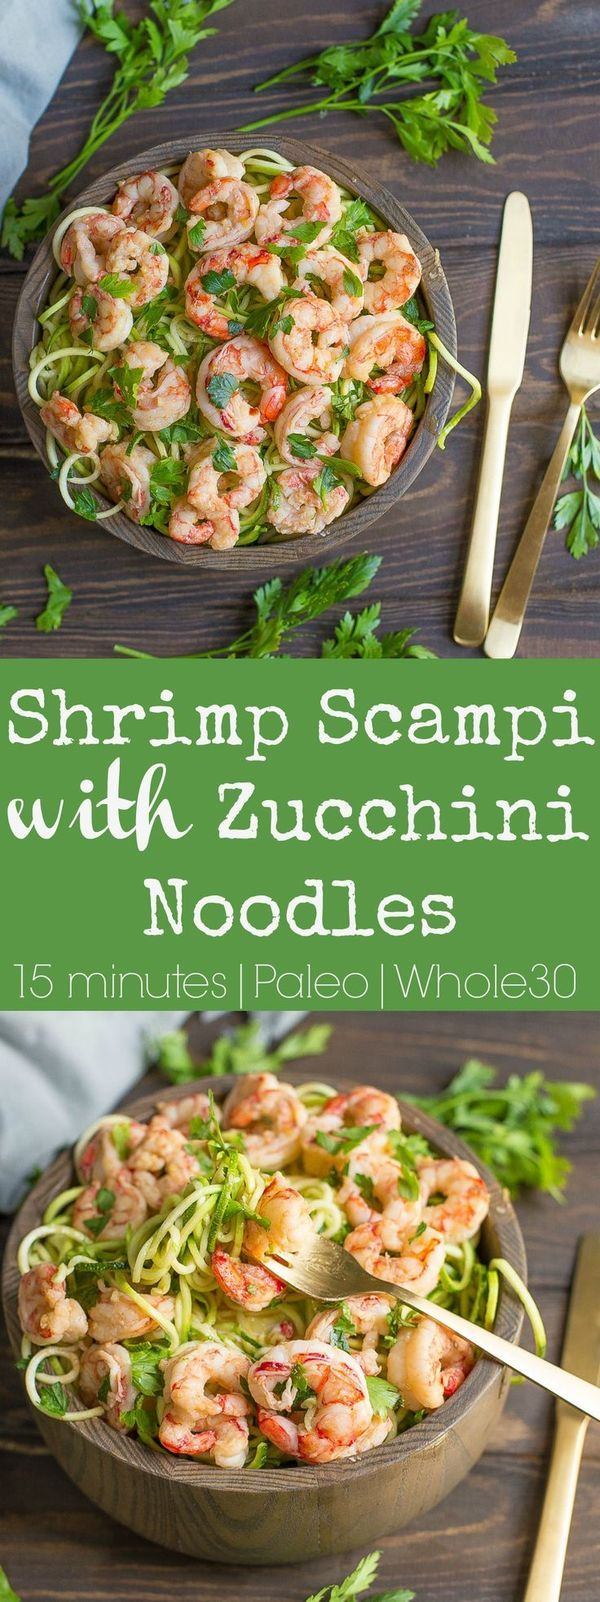 Shrimp Scampi with Zucchini Noodles (Paleo, Whole30)